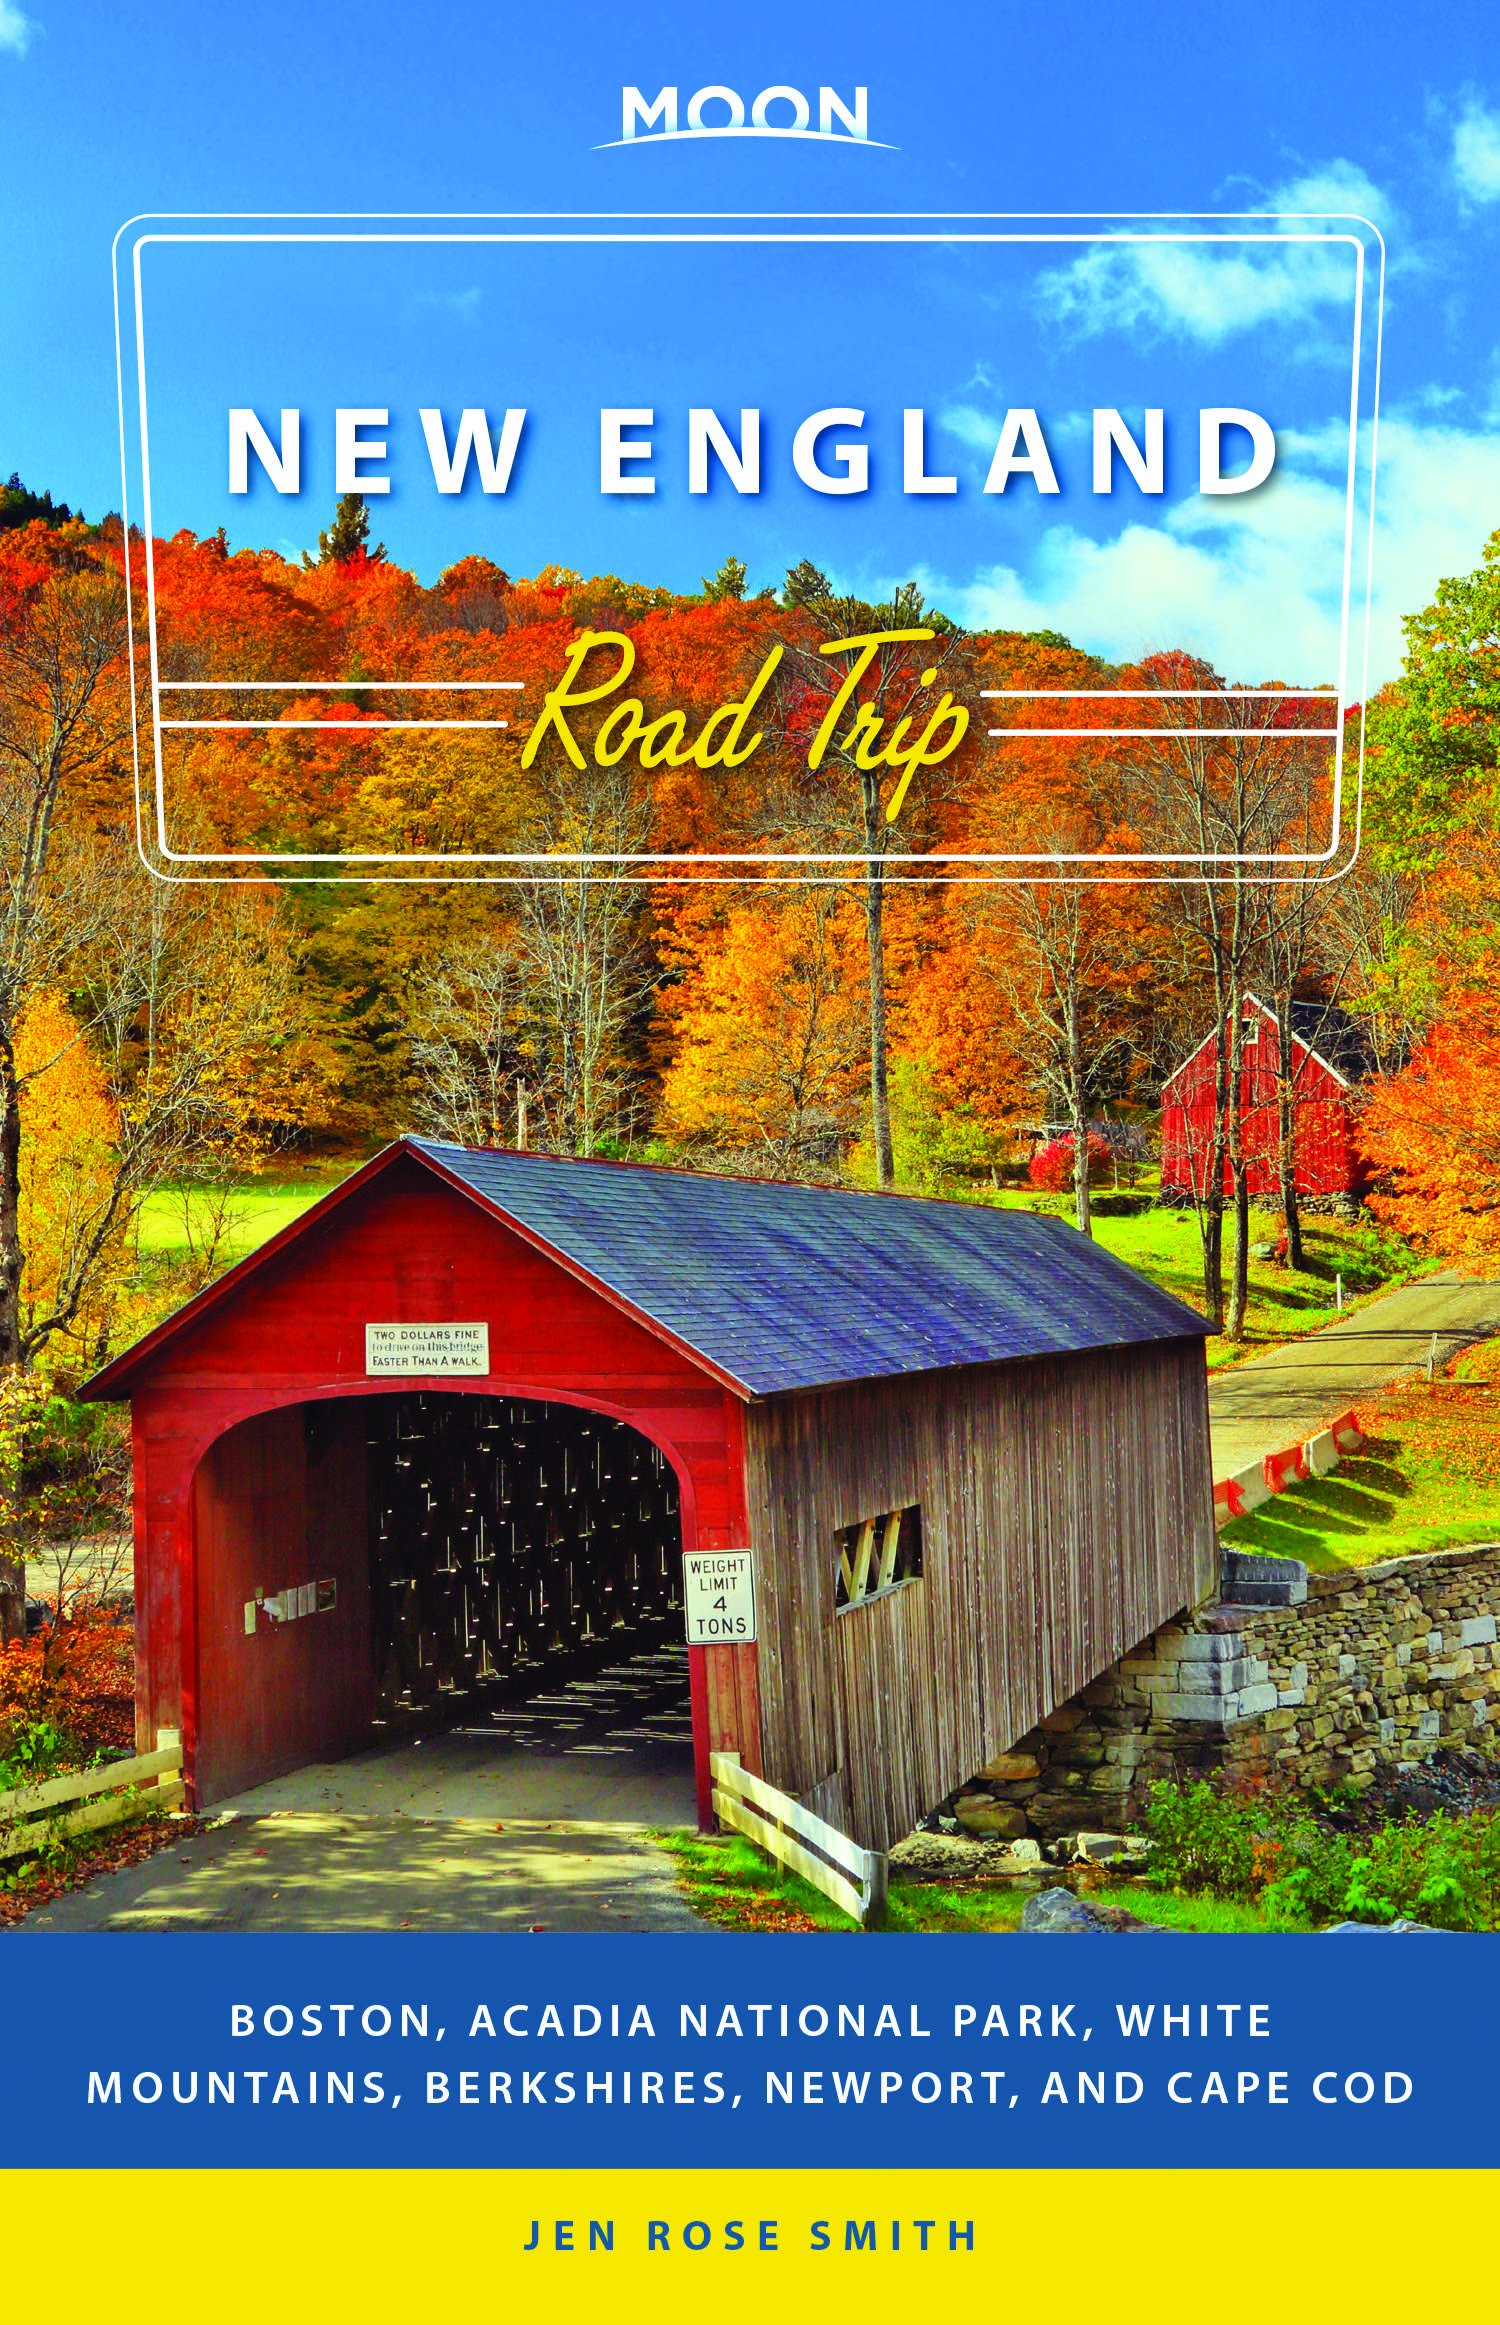 Moon New England Road Trip  Boston Acadia National Park White Mountains Berkshires Newport And Cape Cod  Travel Guide